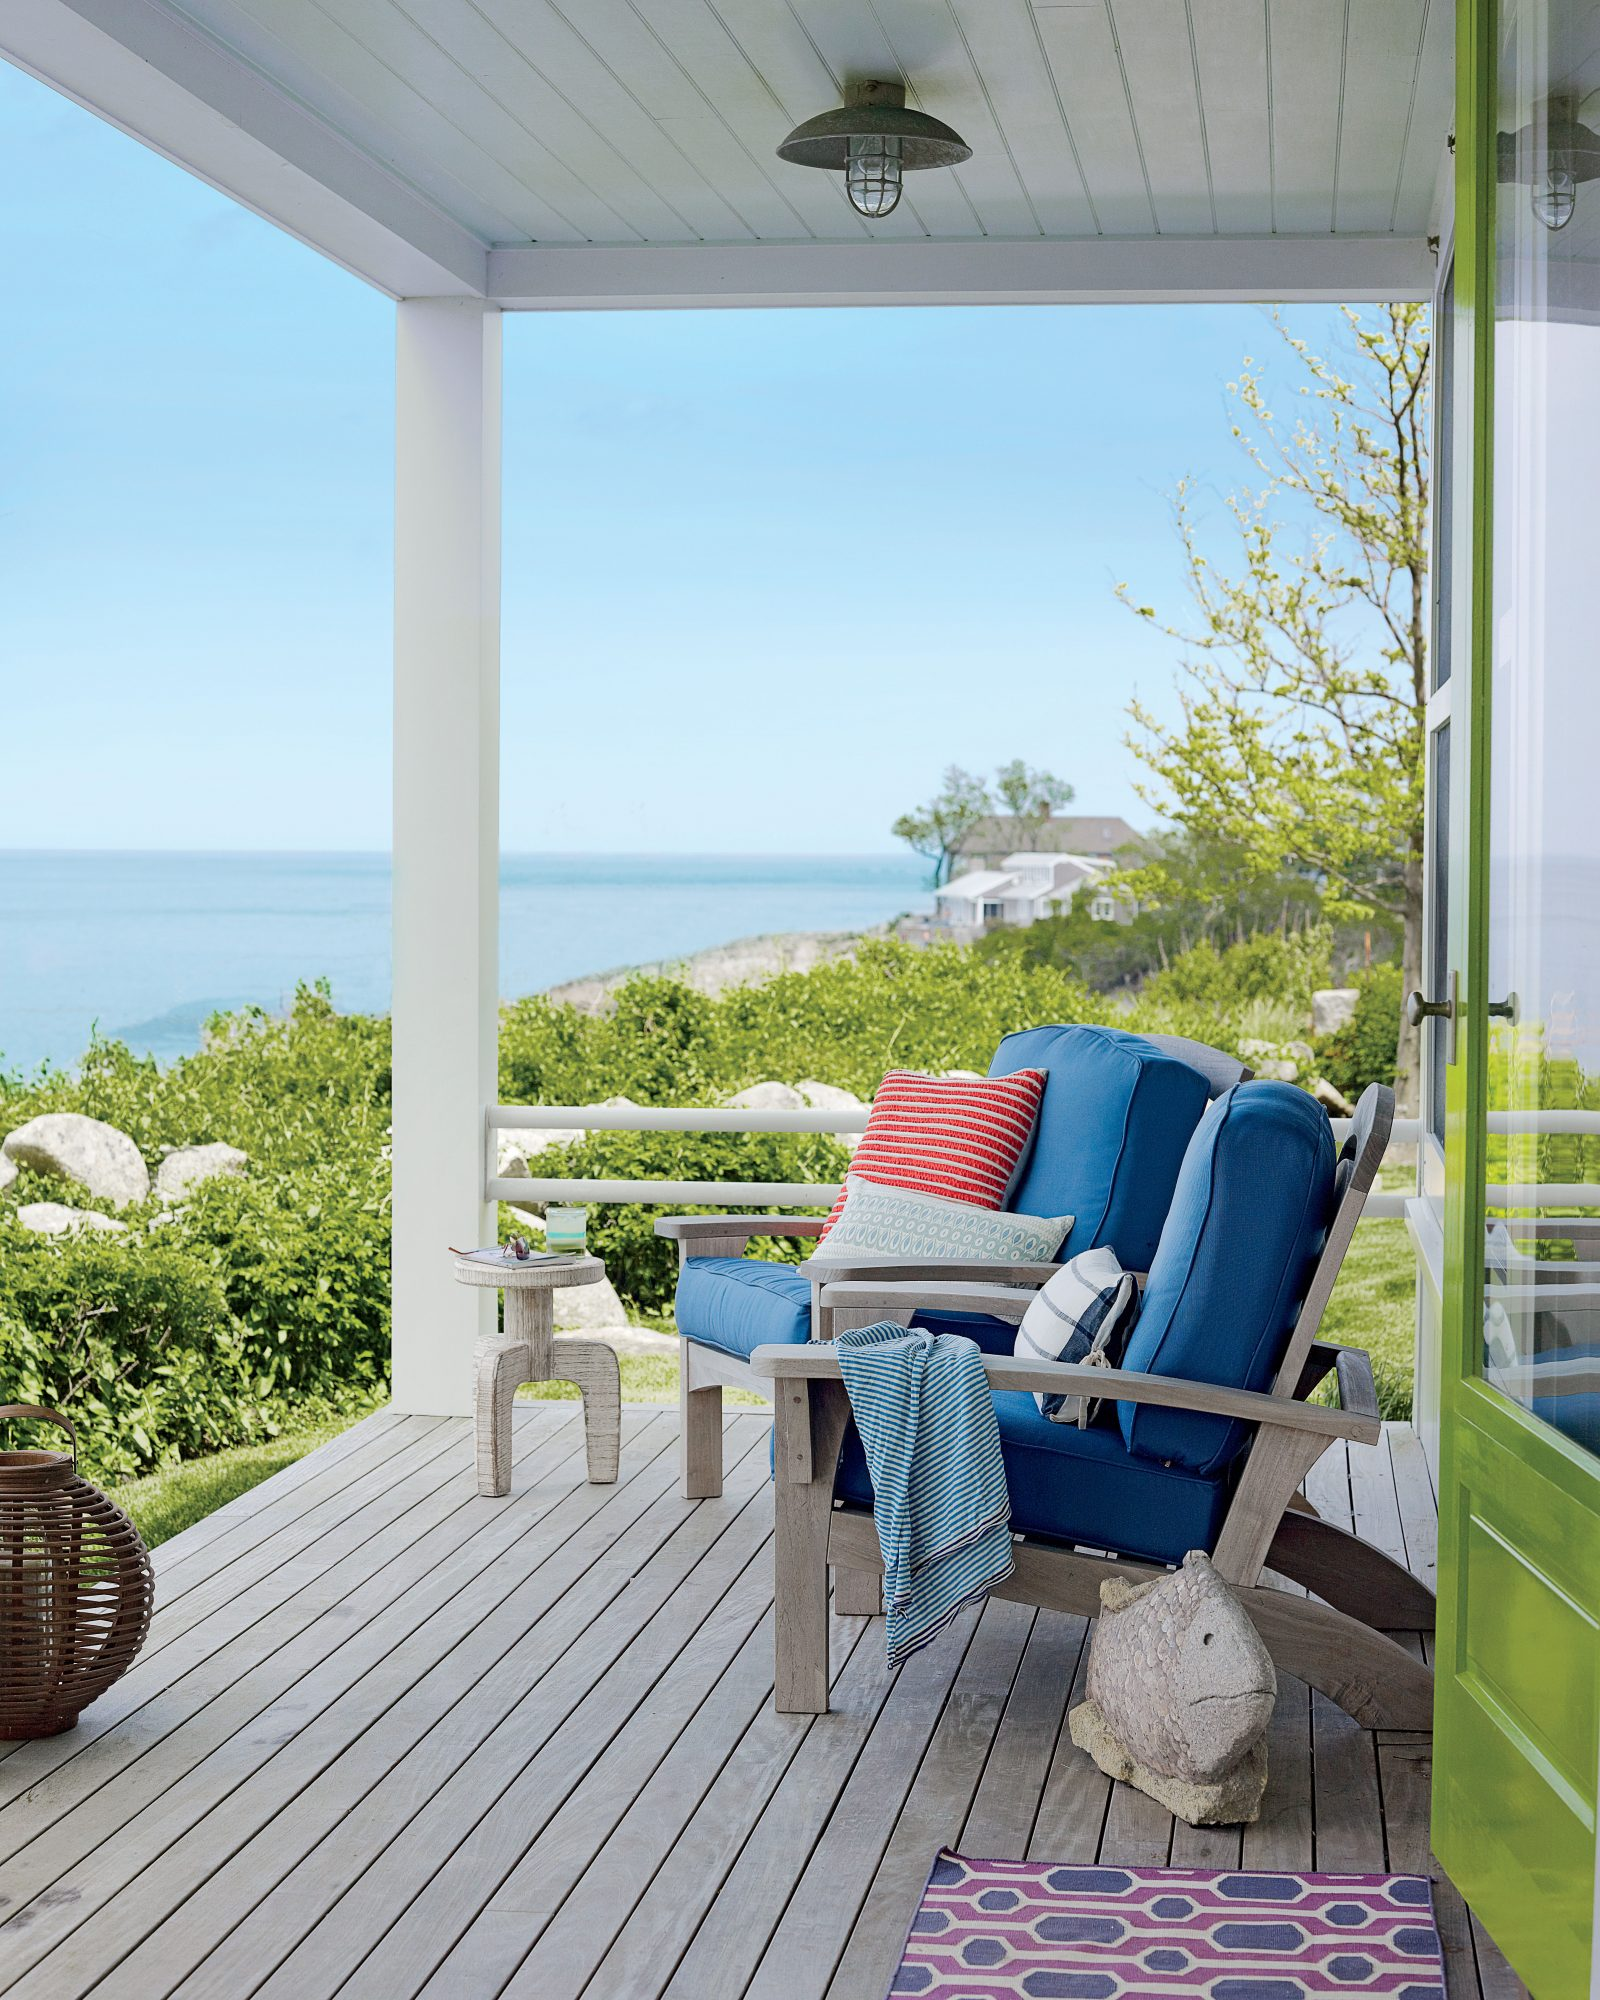 Adirondacks adorned in big blue cushions make for an inviting spot to enjoy morning coffee or happy hour cocktails on this Rockport, Massachusetts, porch.